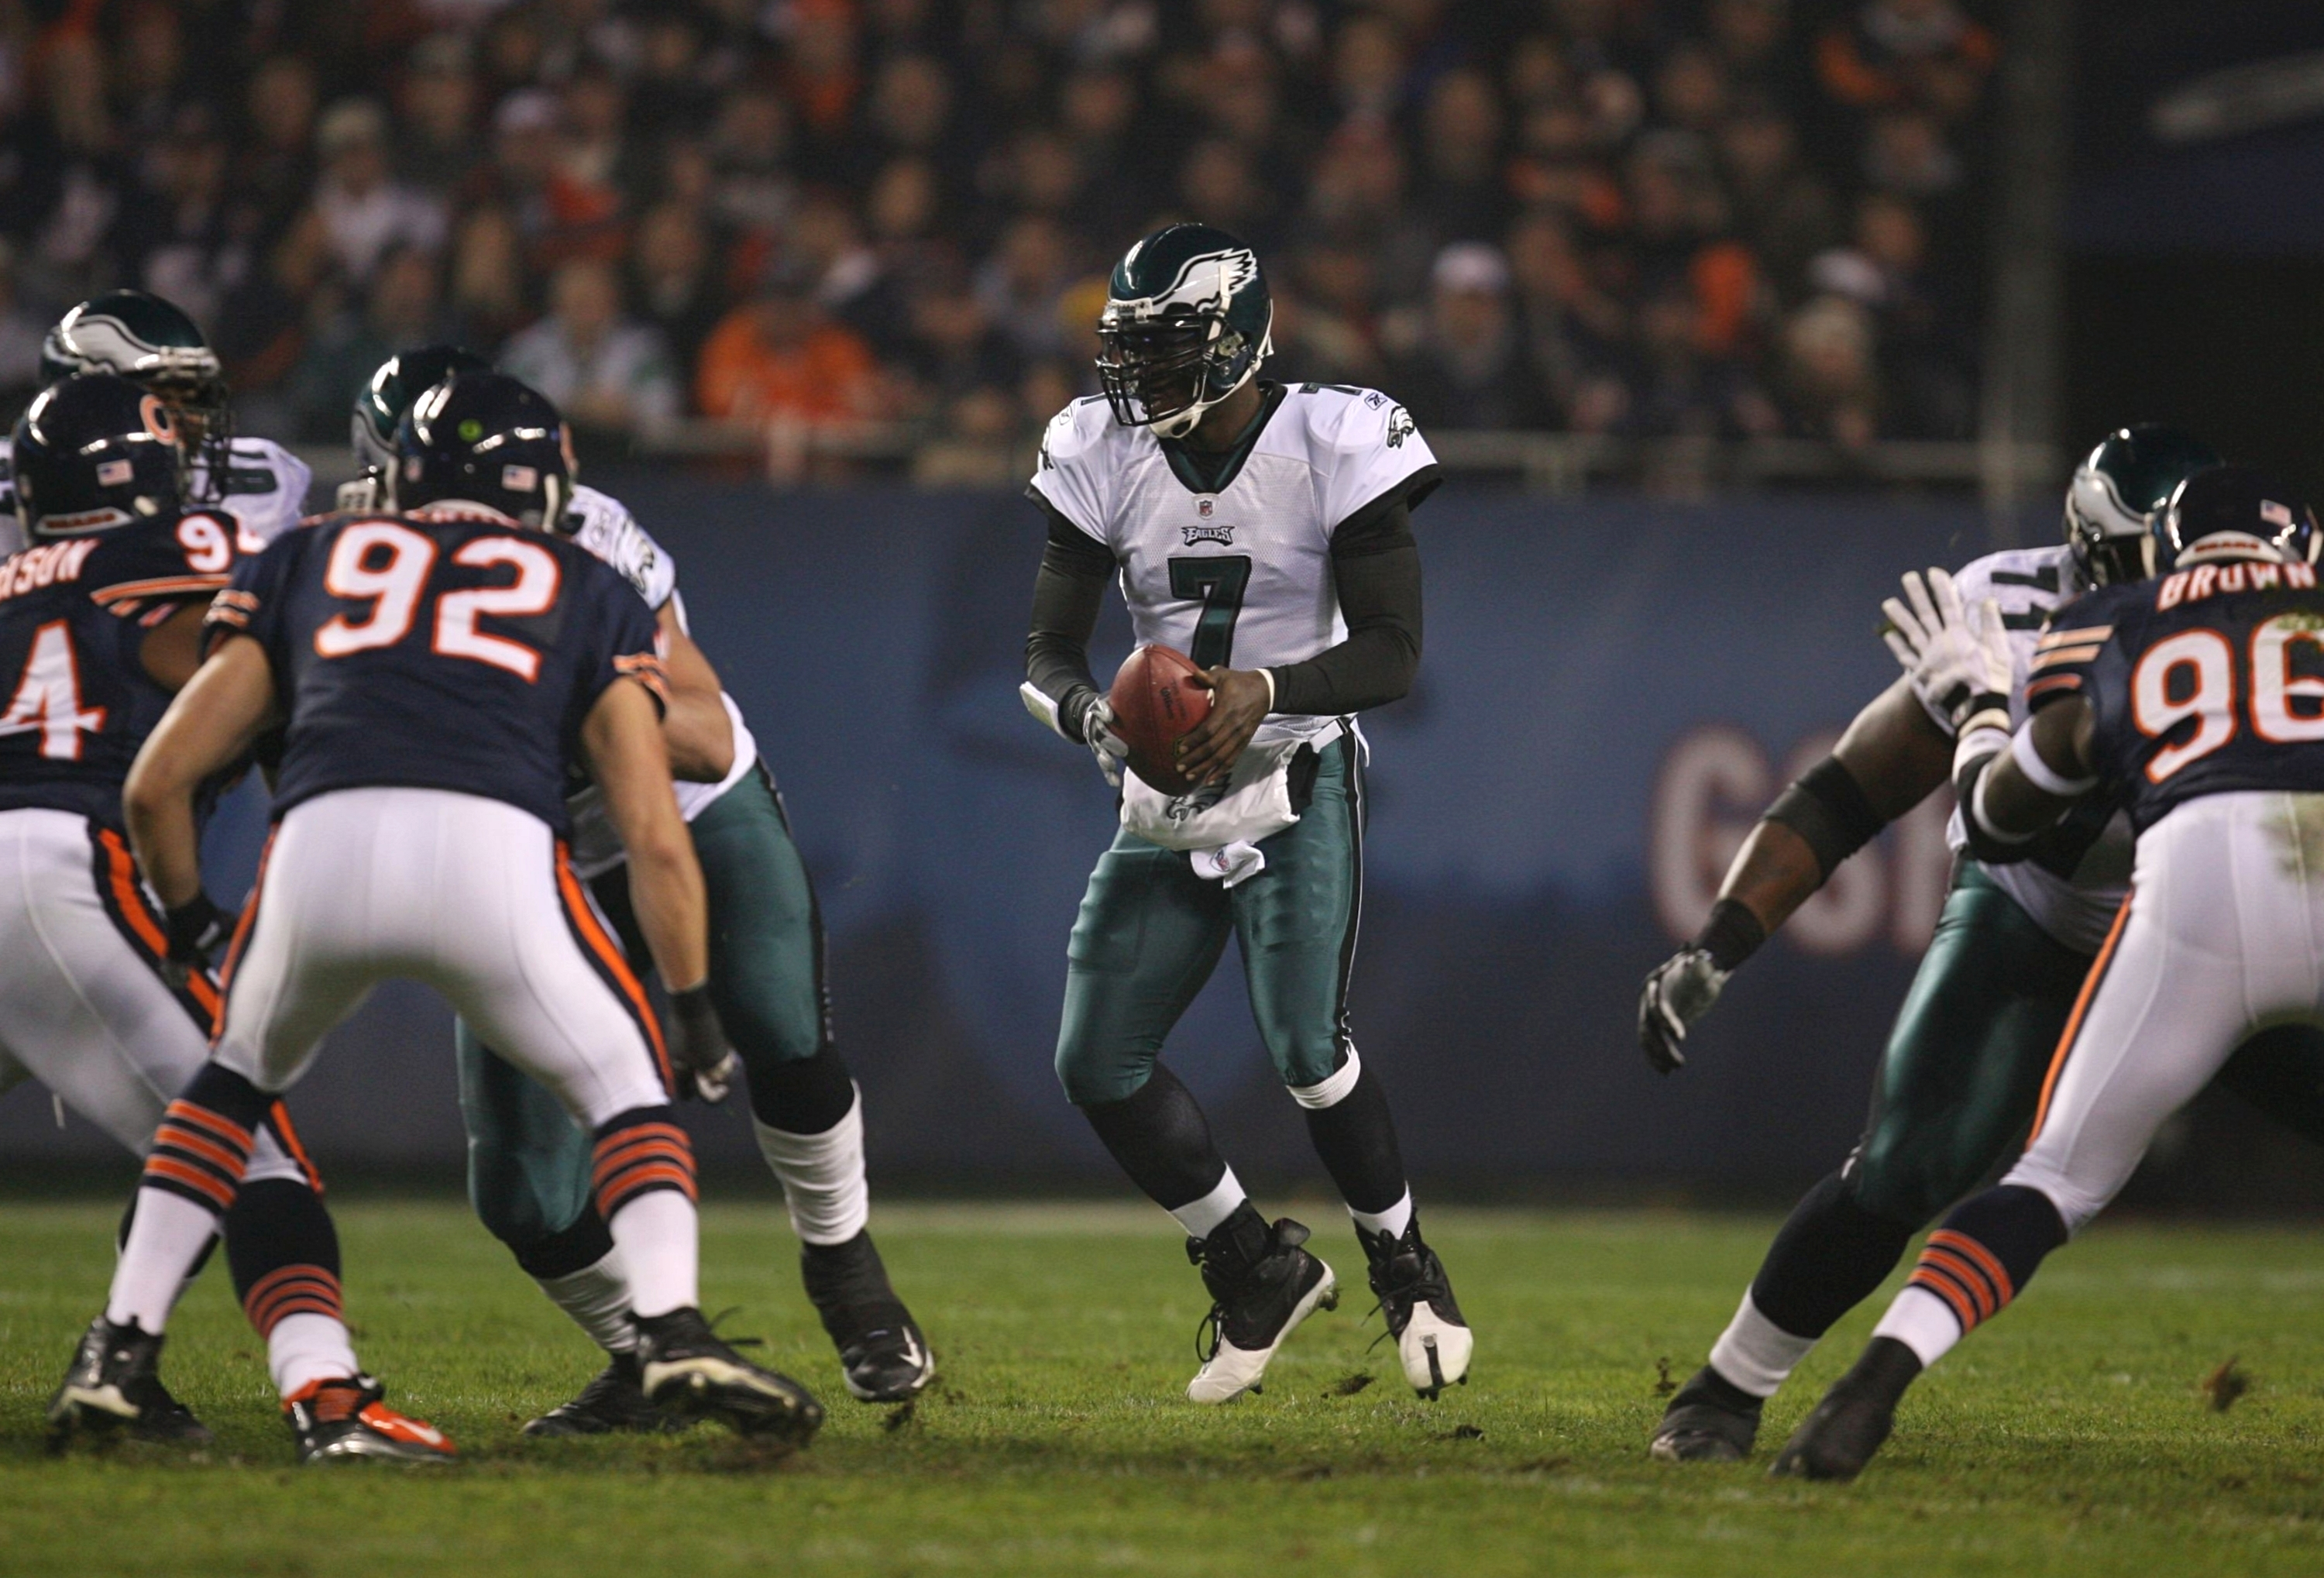 CHICAGO - NOVEMBER 22: Michael Vick #7 of the Philadelphia Eagles takes a direct sanp in the first quarter against the Chicago Bears at Soldier Field on November 22, 2009 in Chicago, Illinois.  (Photo by Jonathan Daniel/Getty Images)